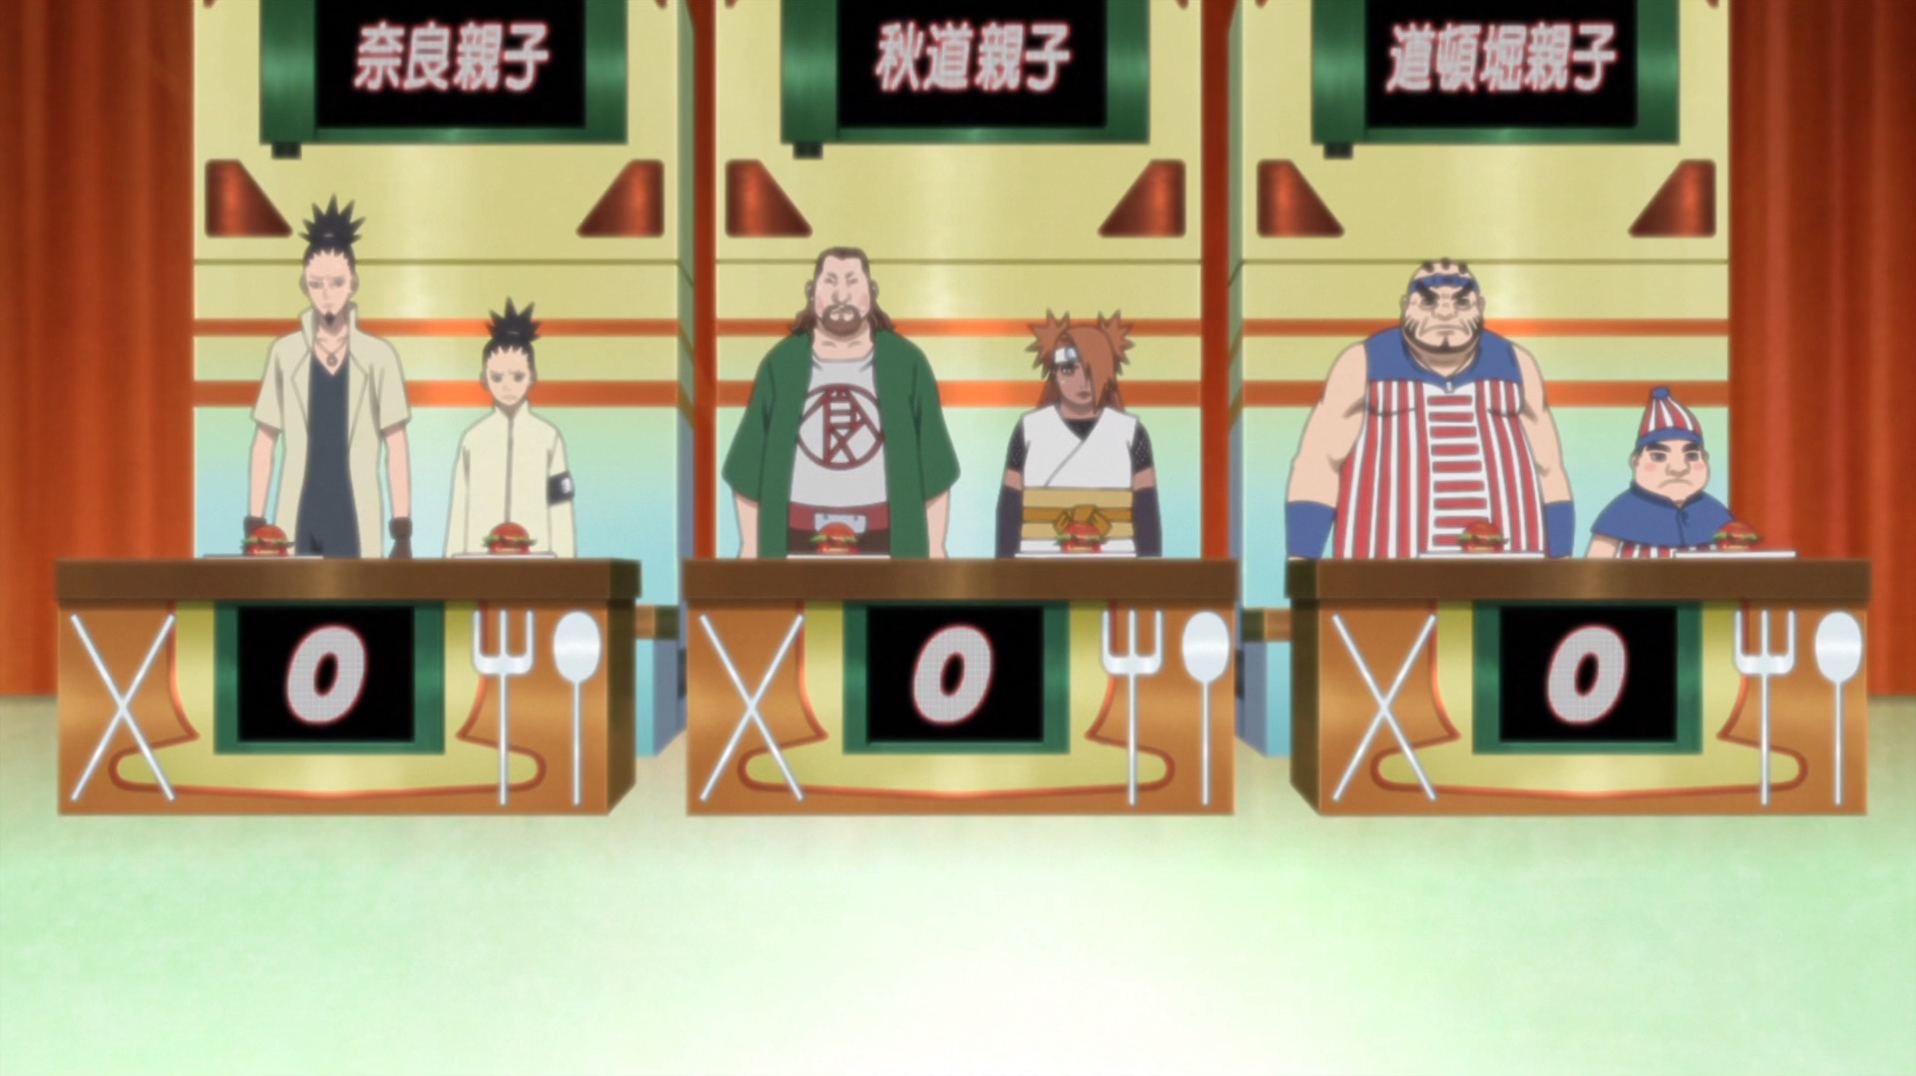 A Heaping Helping! The Eating Contest! | Narutopedia